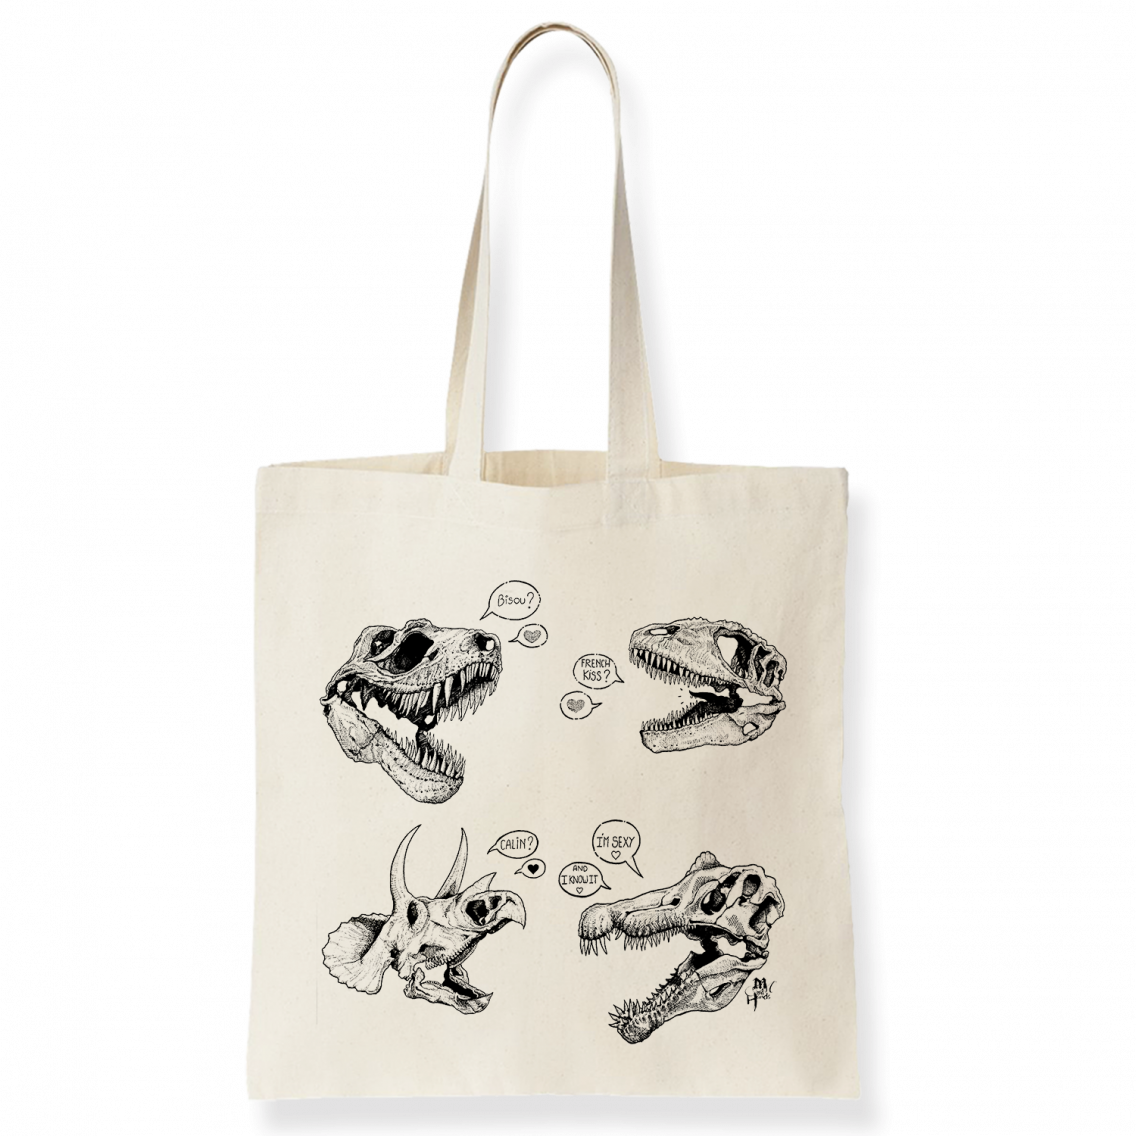 Mad'hands tote bag - Atelier du Quai